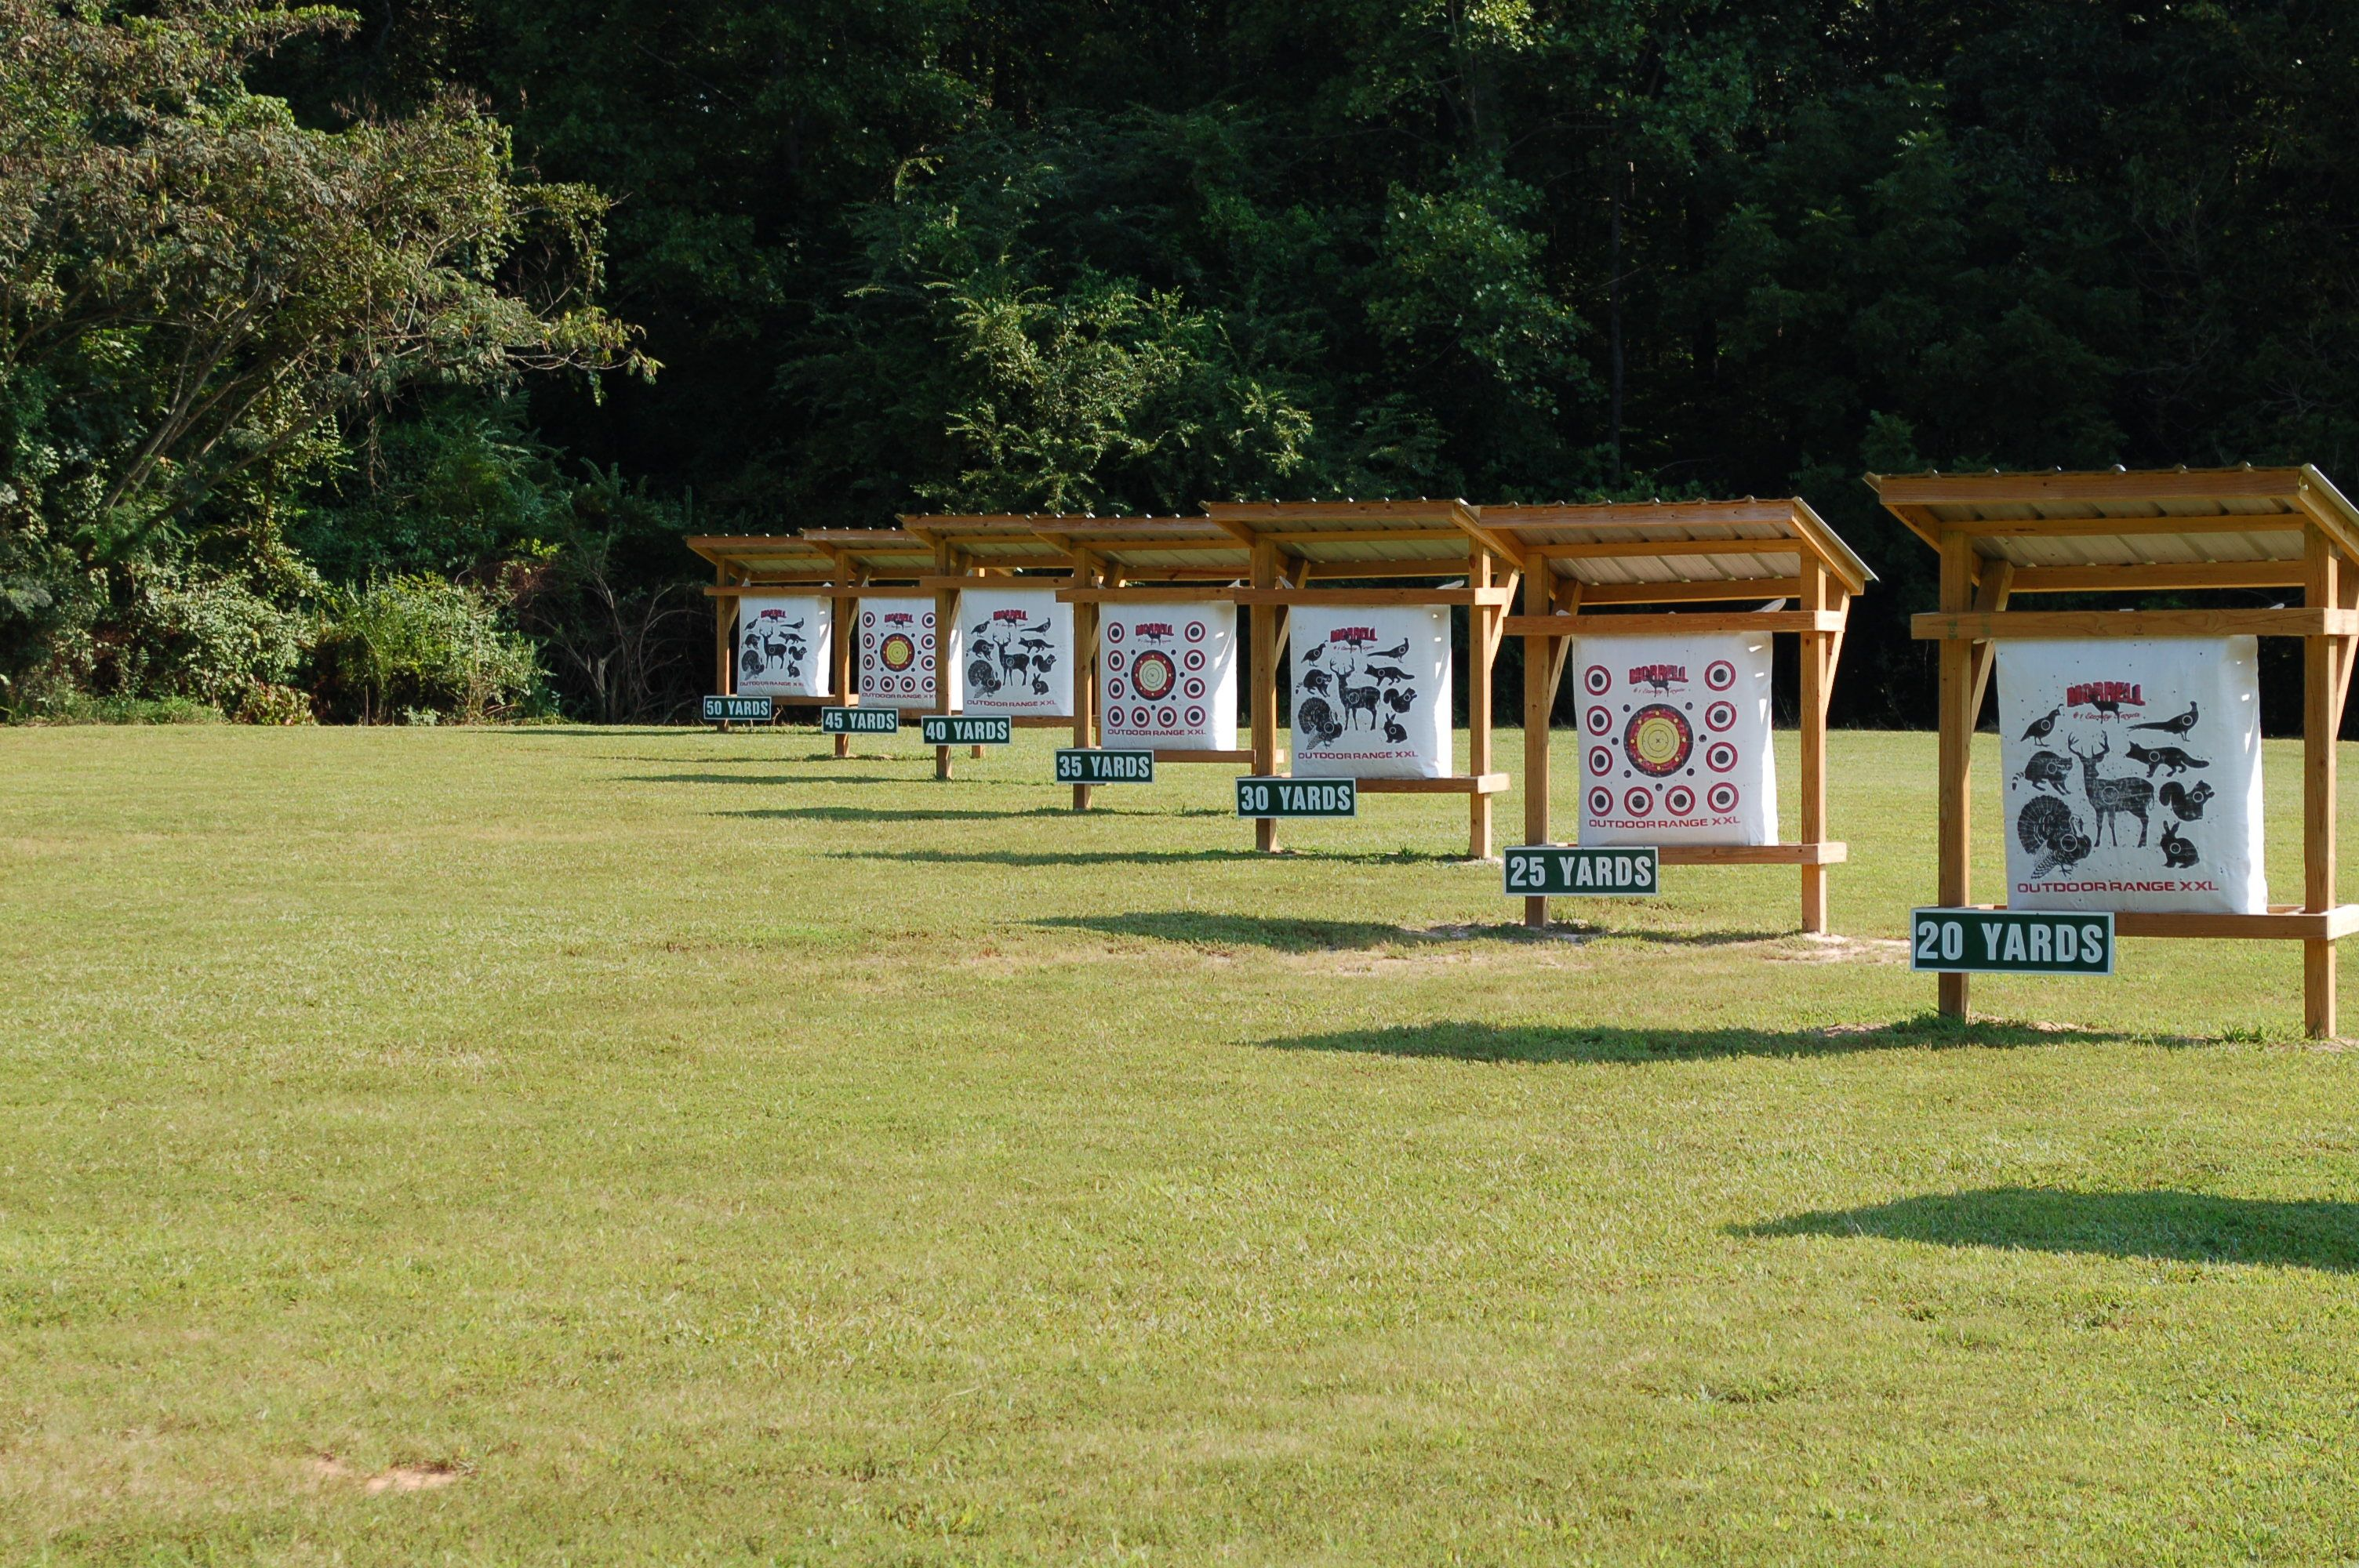 Archery Range Colorado Springs